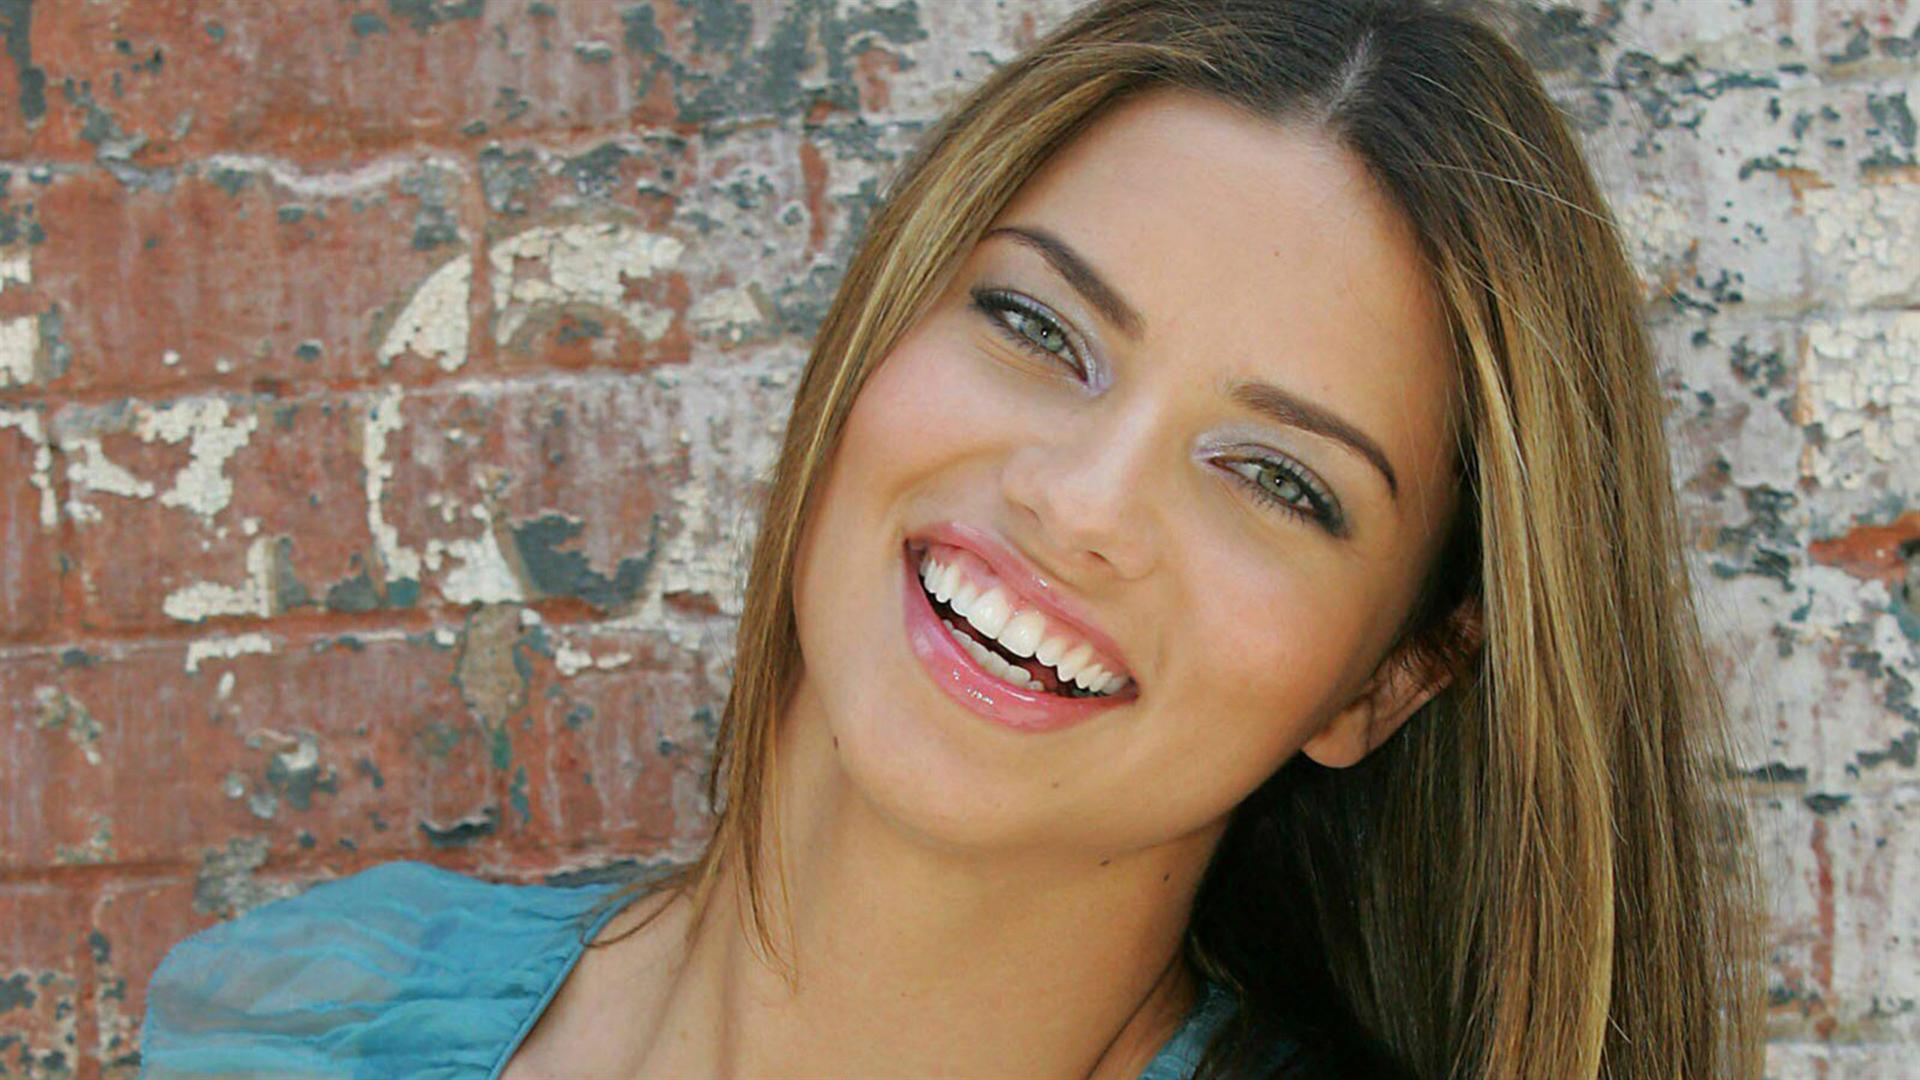 amazing adriana lima smiling face look background free desktop hd mobile images